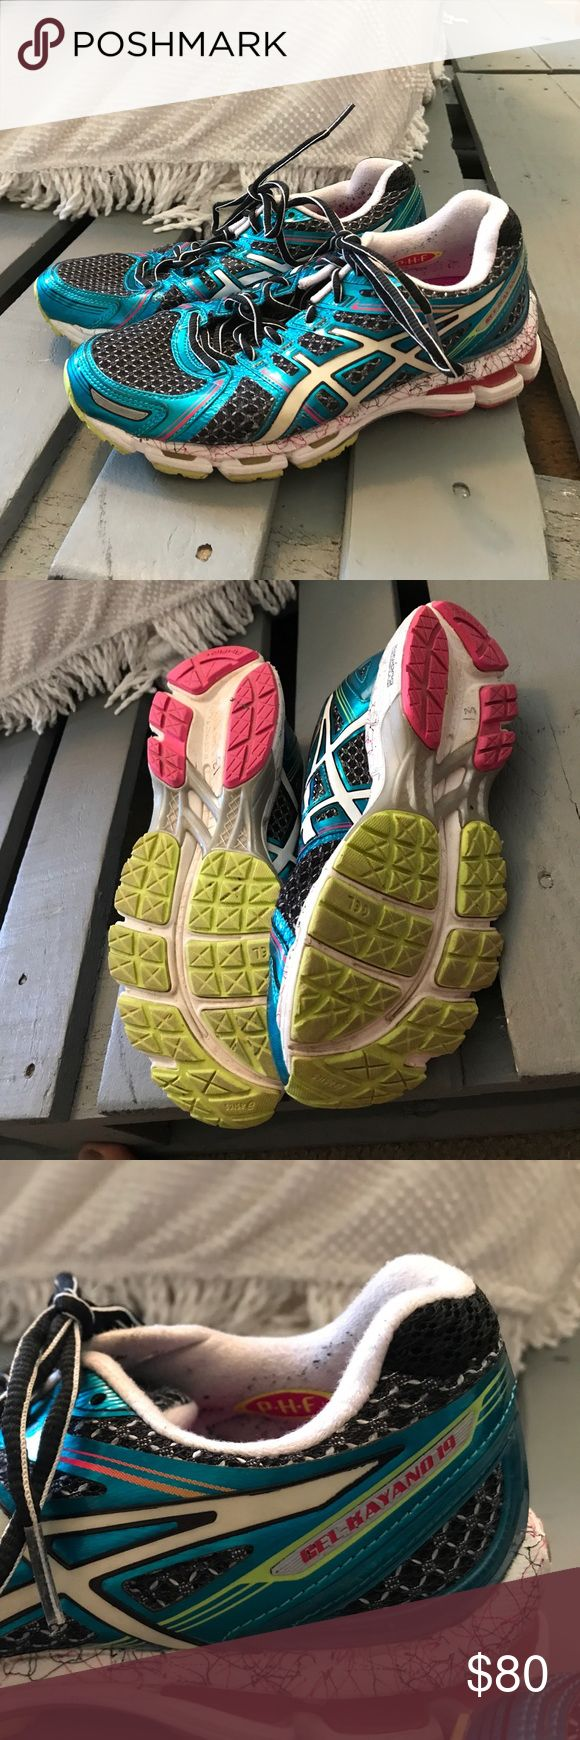 Asics Gel Kayano 19 Running Shoes Lightly used Gel Kayano 19's by Asics. Great condition. Light pilling around heel area from socks. Nearly perfect soles. Asics Shoes Sneakers